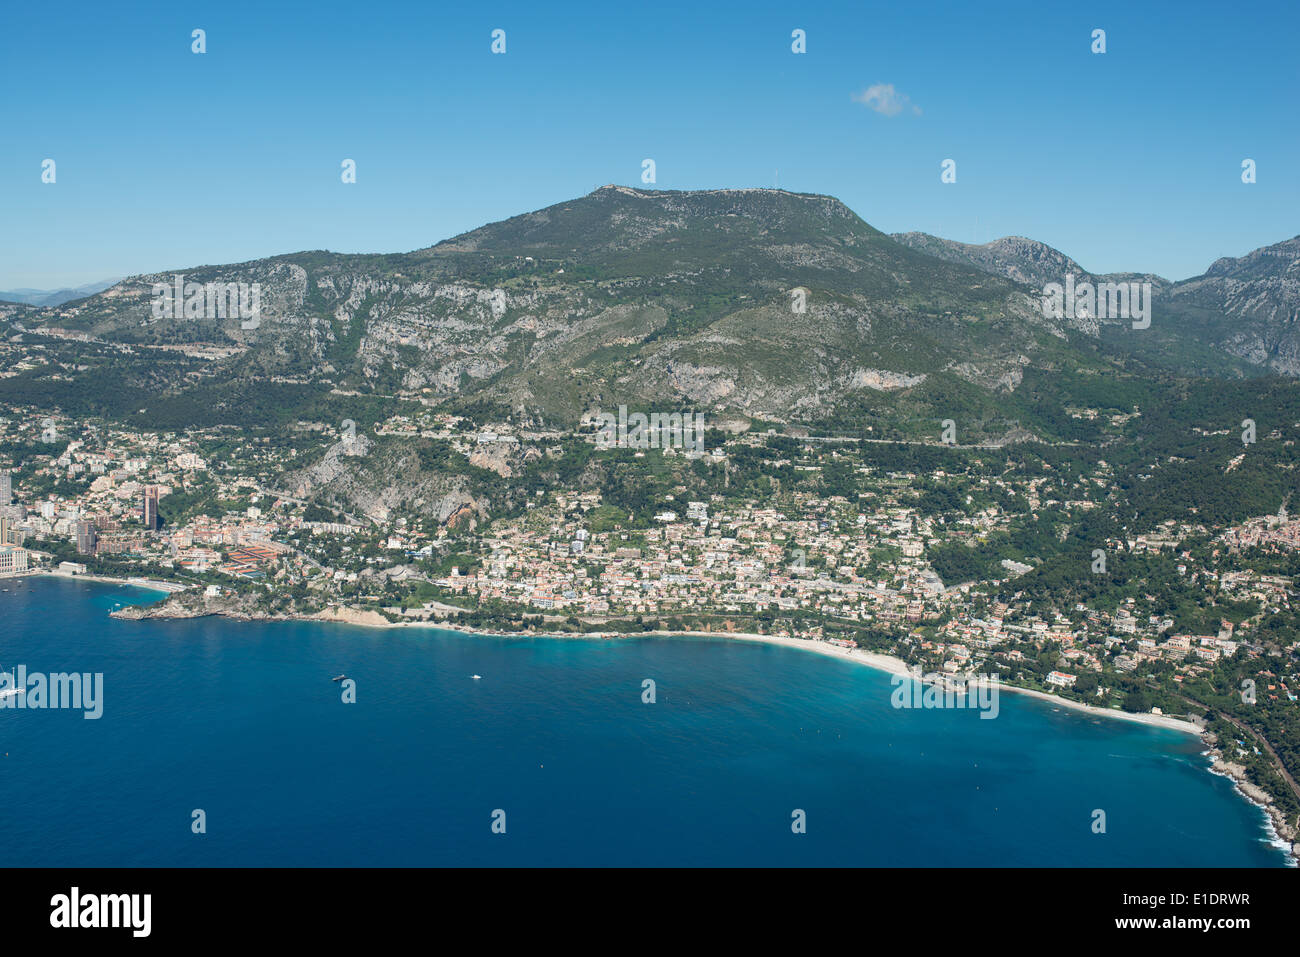 ROQUEBRUNE-CAP-MARTIN (aerial view). Seaside resort at the foot of Mont-Agel (1148 meters AMSL). Alpes-Maritimes, France. - Stock Image